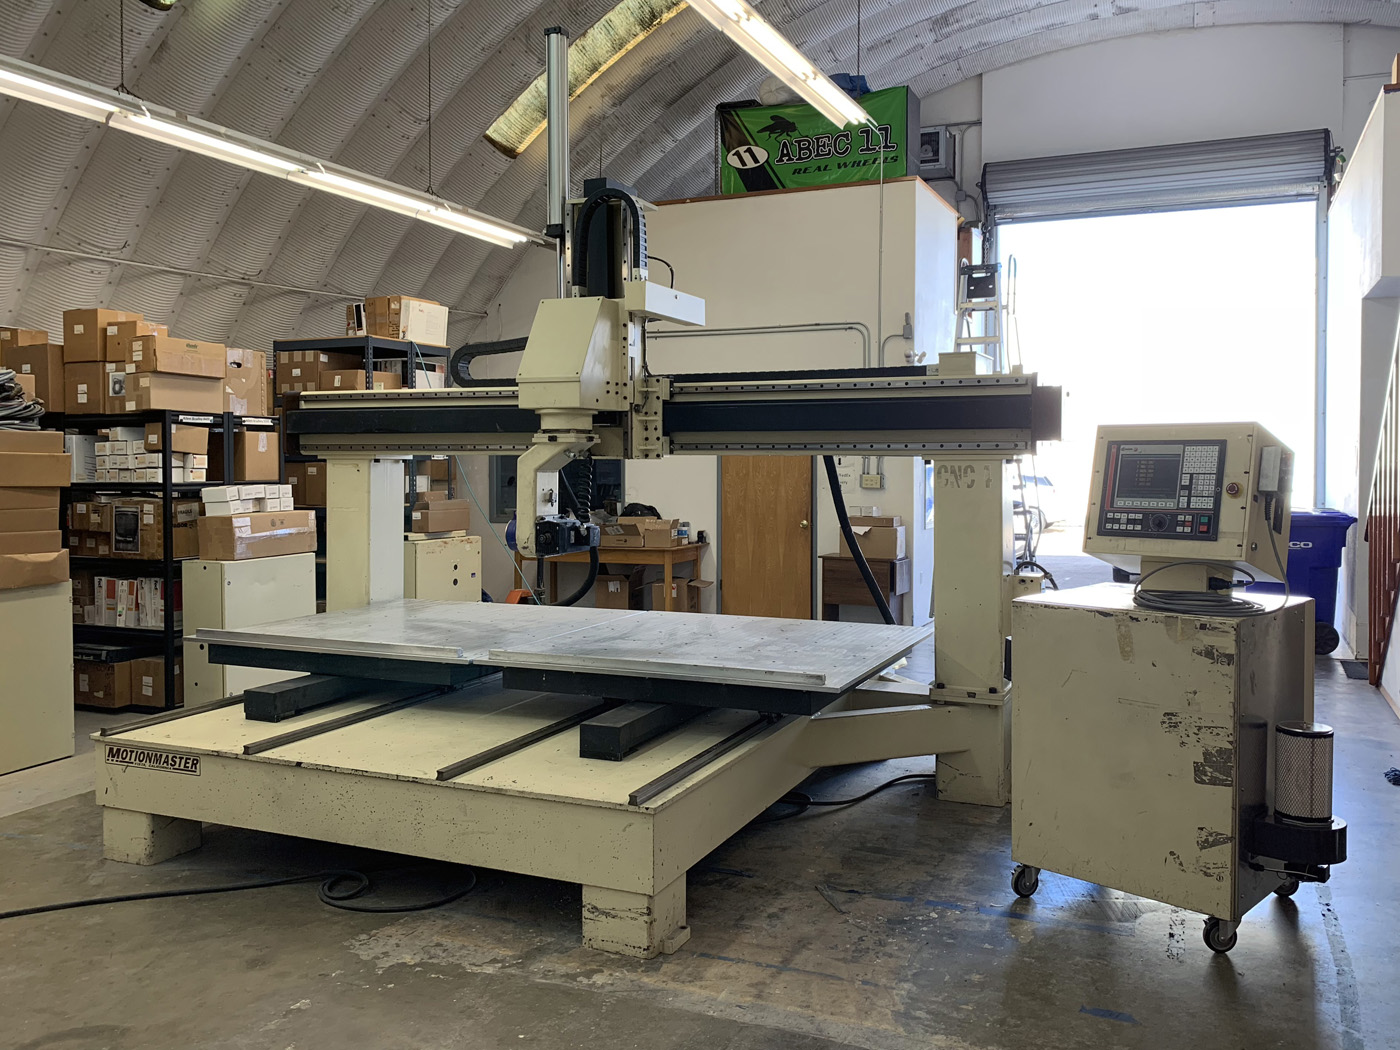 Motionmaster 5 Axis CNC Router E509 04